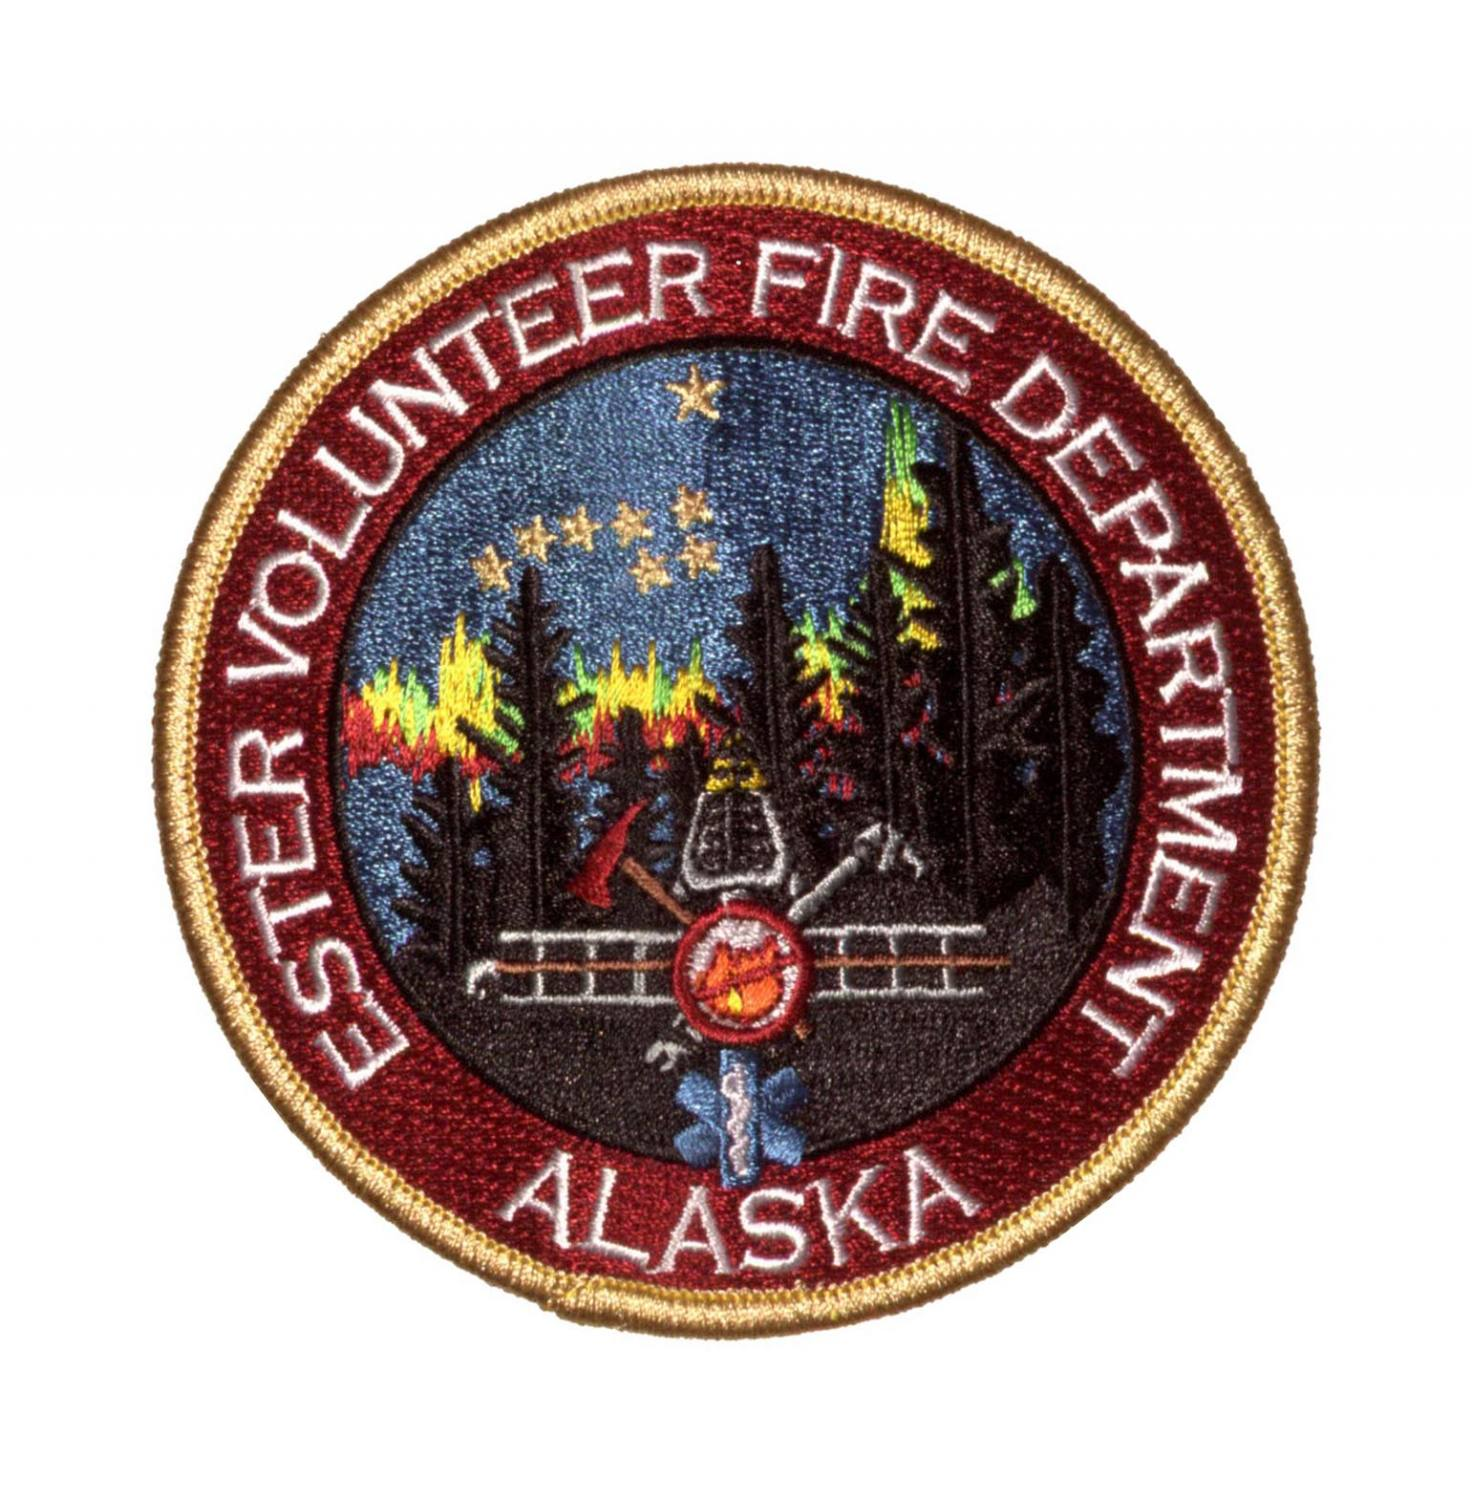 Volunteer Fire patches